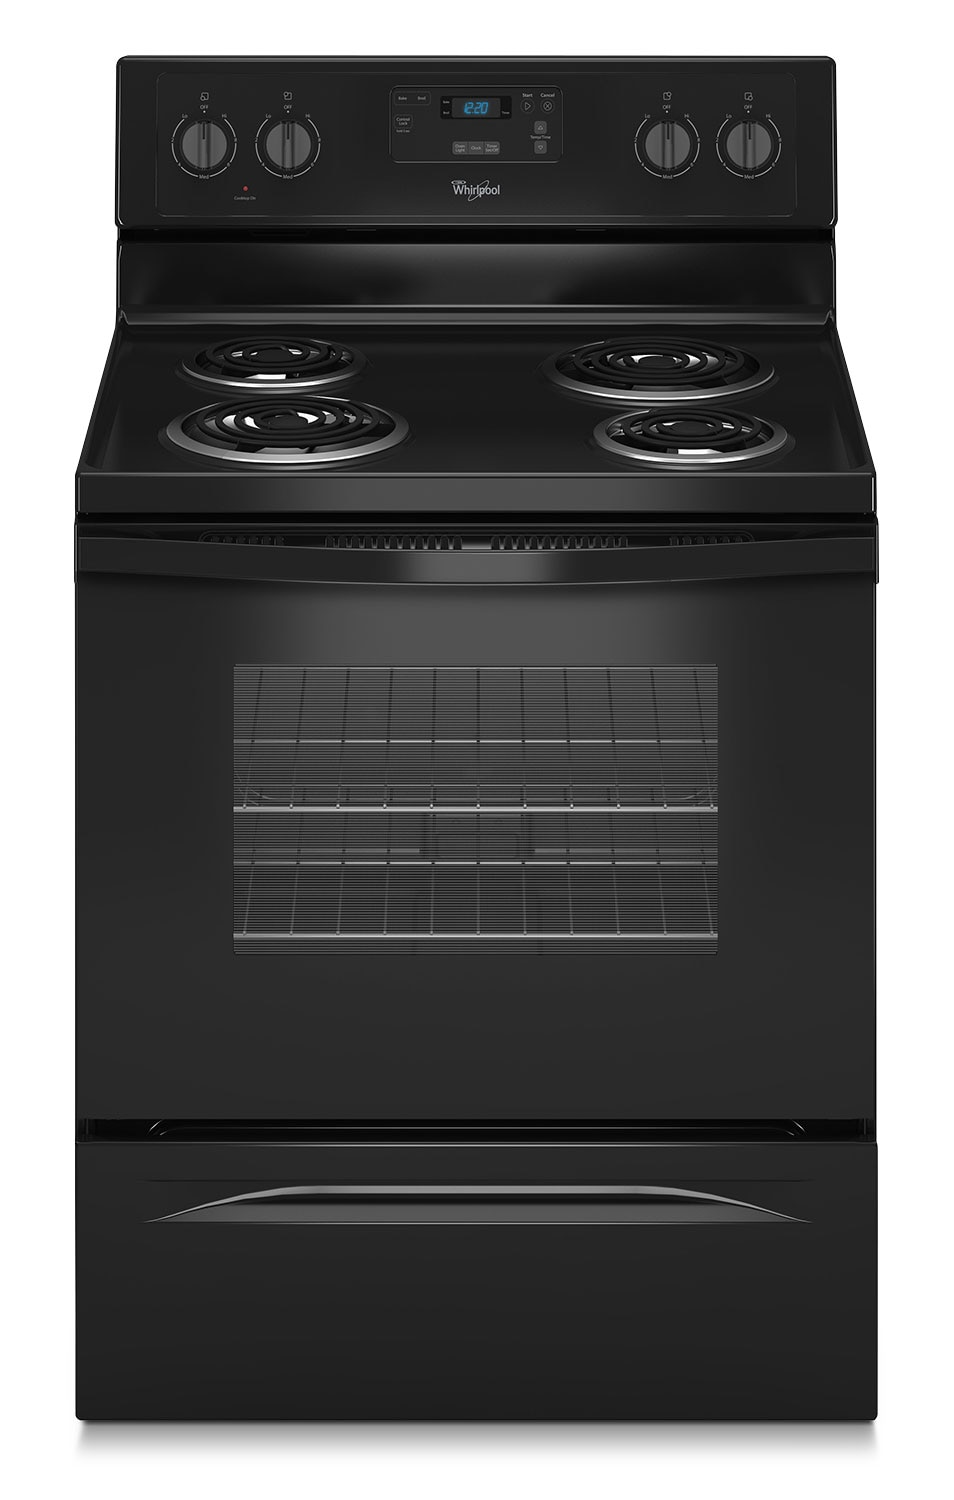 Cooking Products - Whirlpool Black Freestanding Electric Range (4.8 Cu. Ft.) - YWFC150M0EB